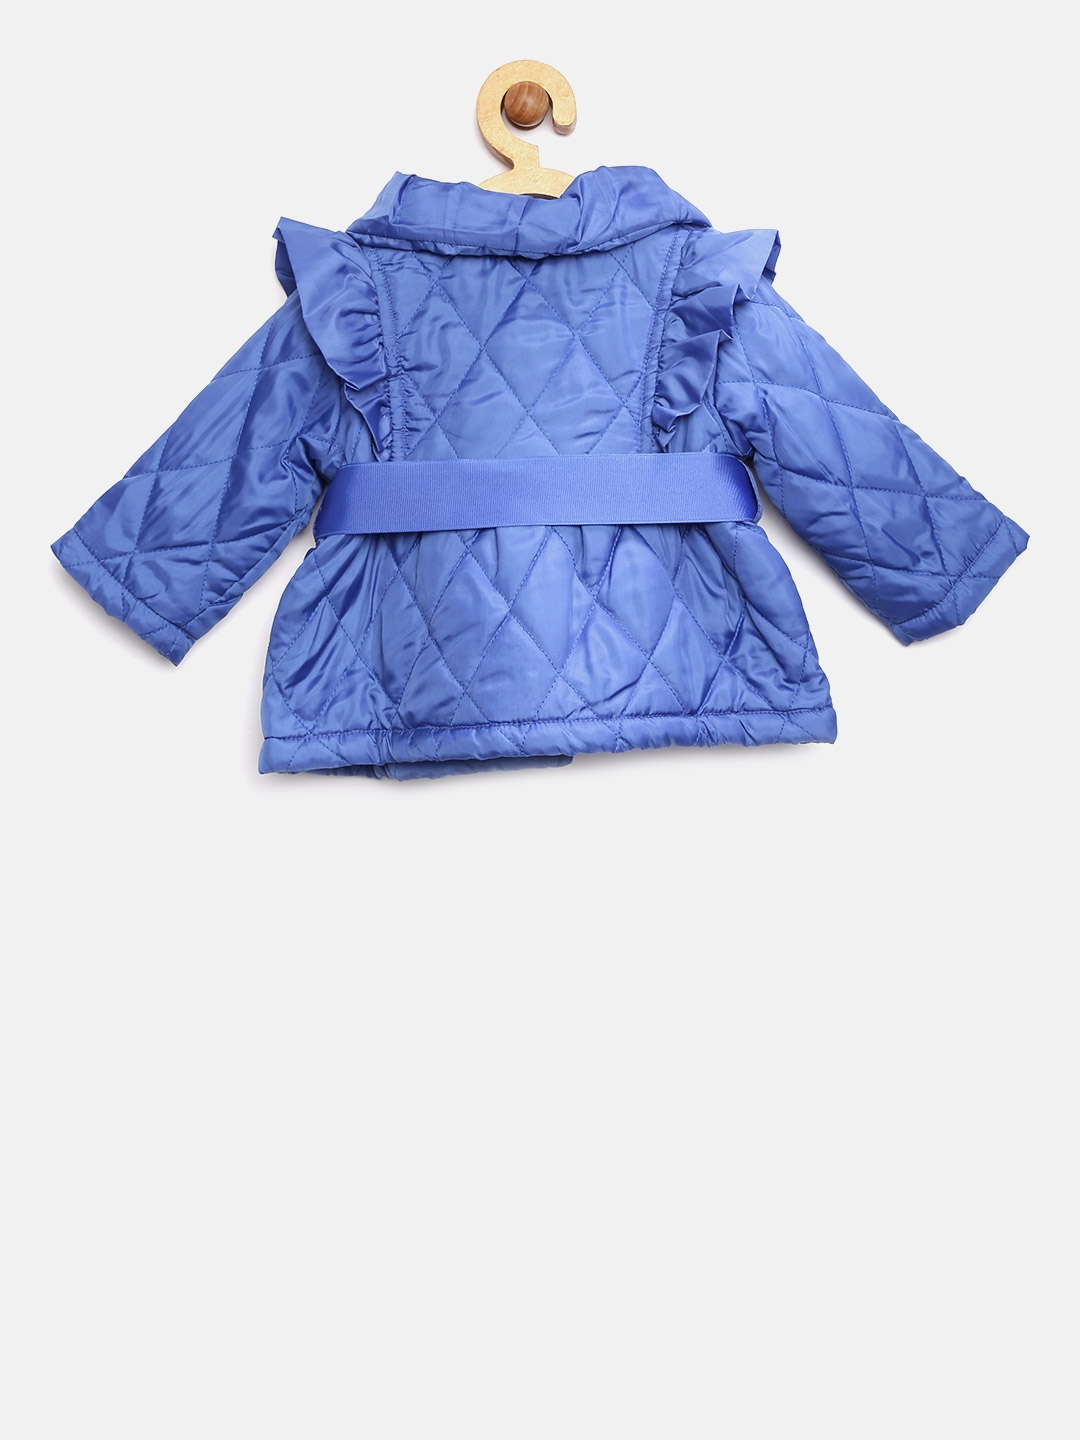 2a7a726a91f6 Buy Nauti Nati Girls Blue Solid Quilted Jacket - Jackets for Girls ...